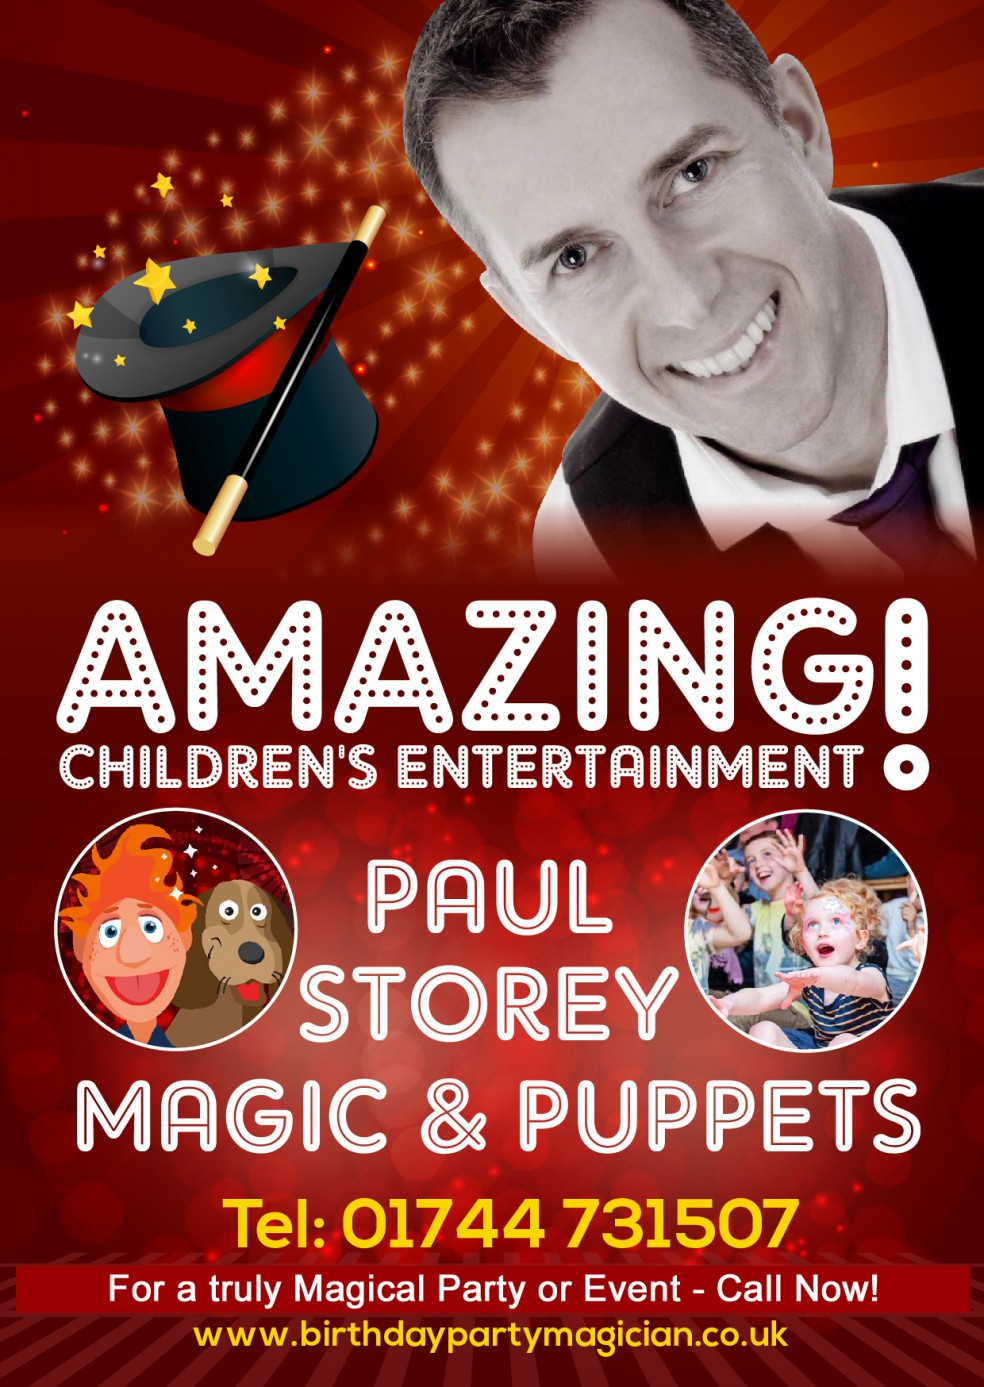 Magician, children's magician, children's entertainer, magic, puppets